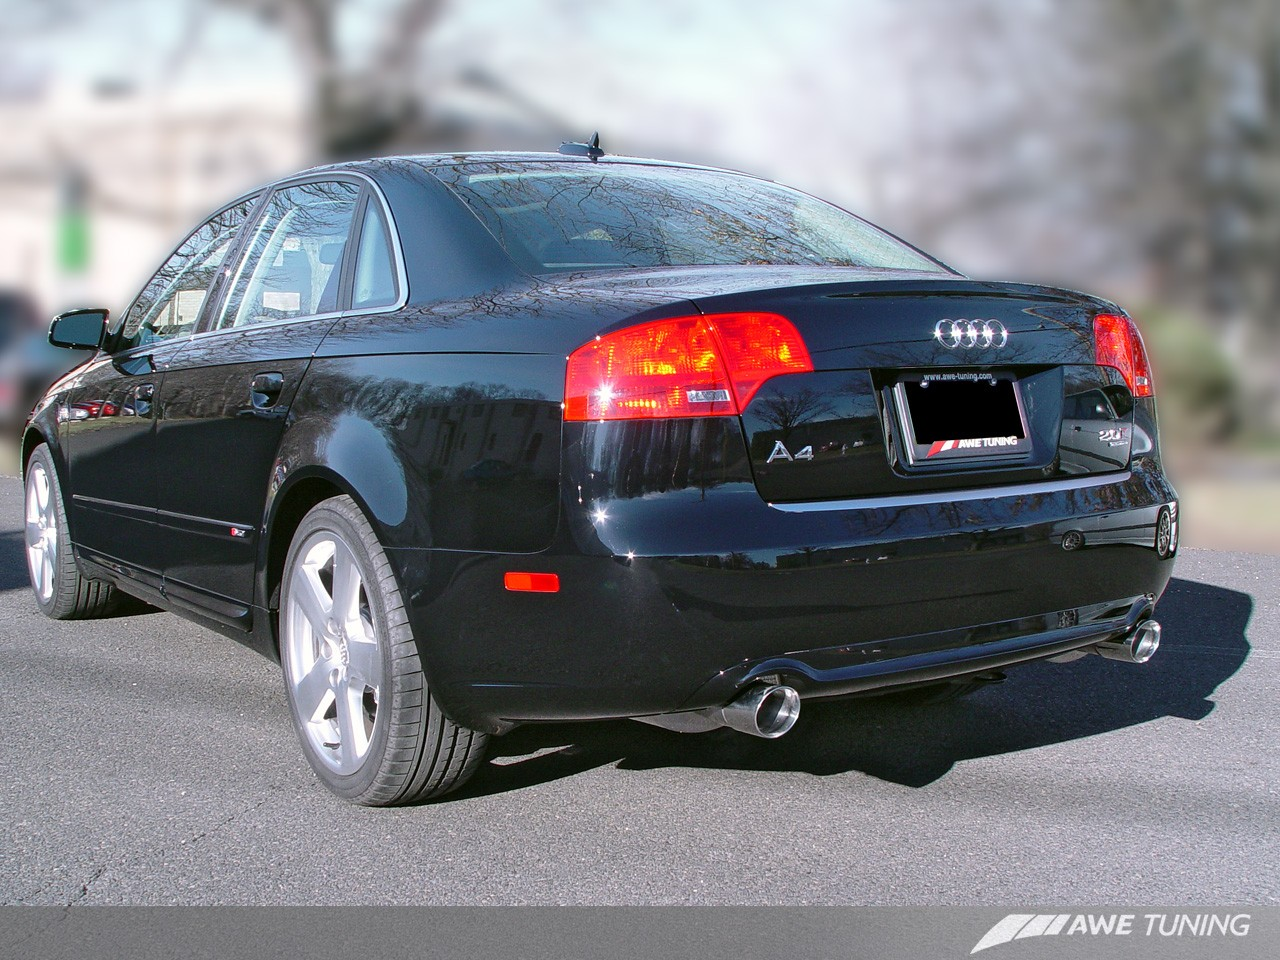 AWE Tuning 3020-33018 Track Edition Dual Tip Exhaust System Diamond Black Tips Audi B7 A4 3.2L 06-08